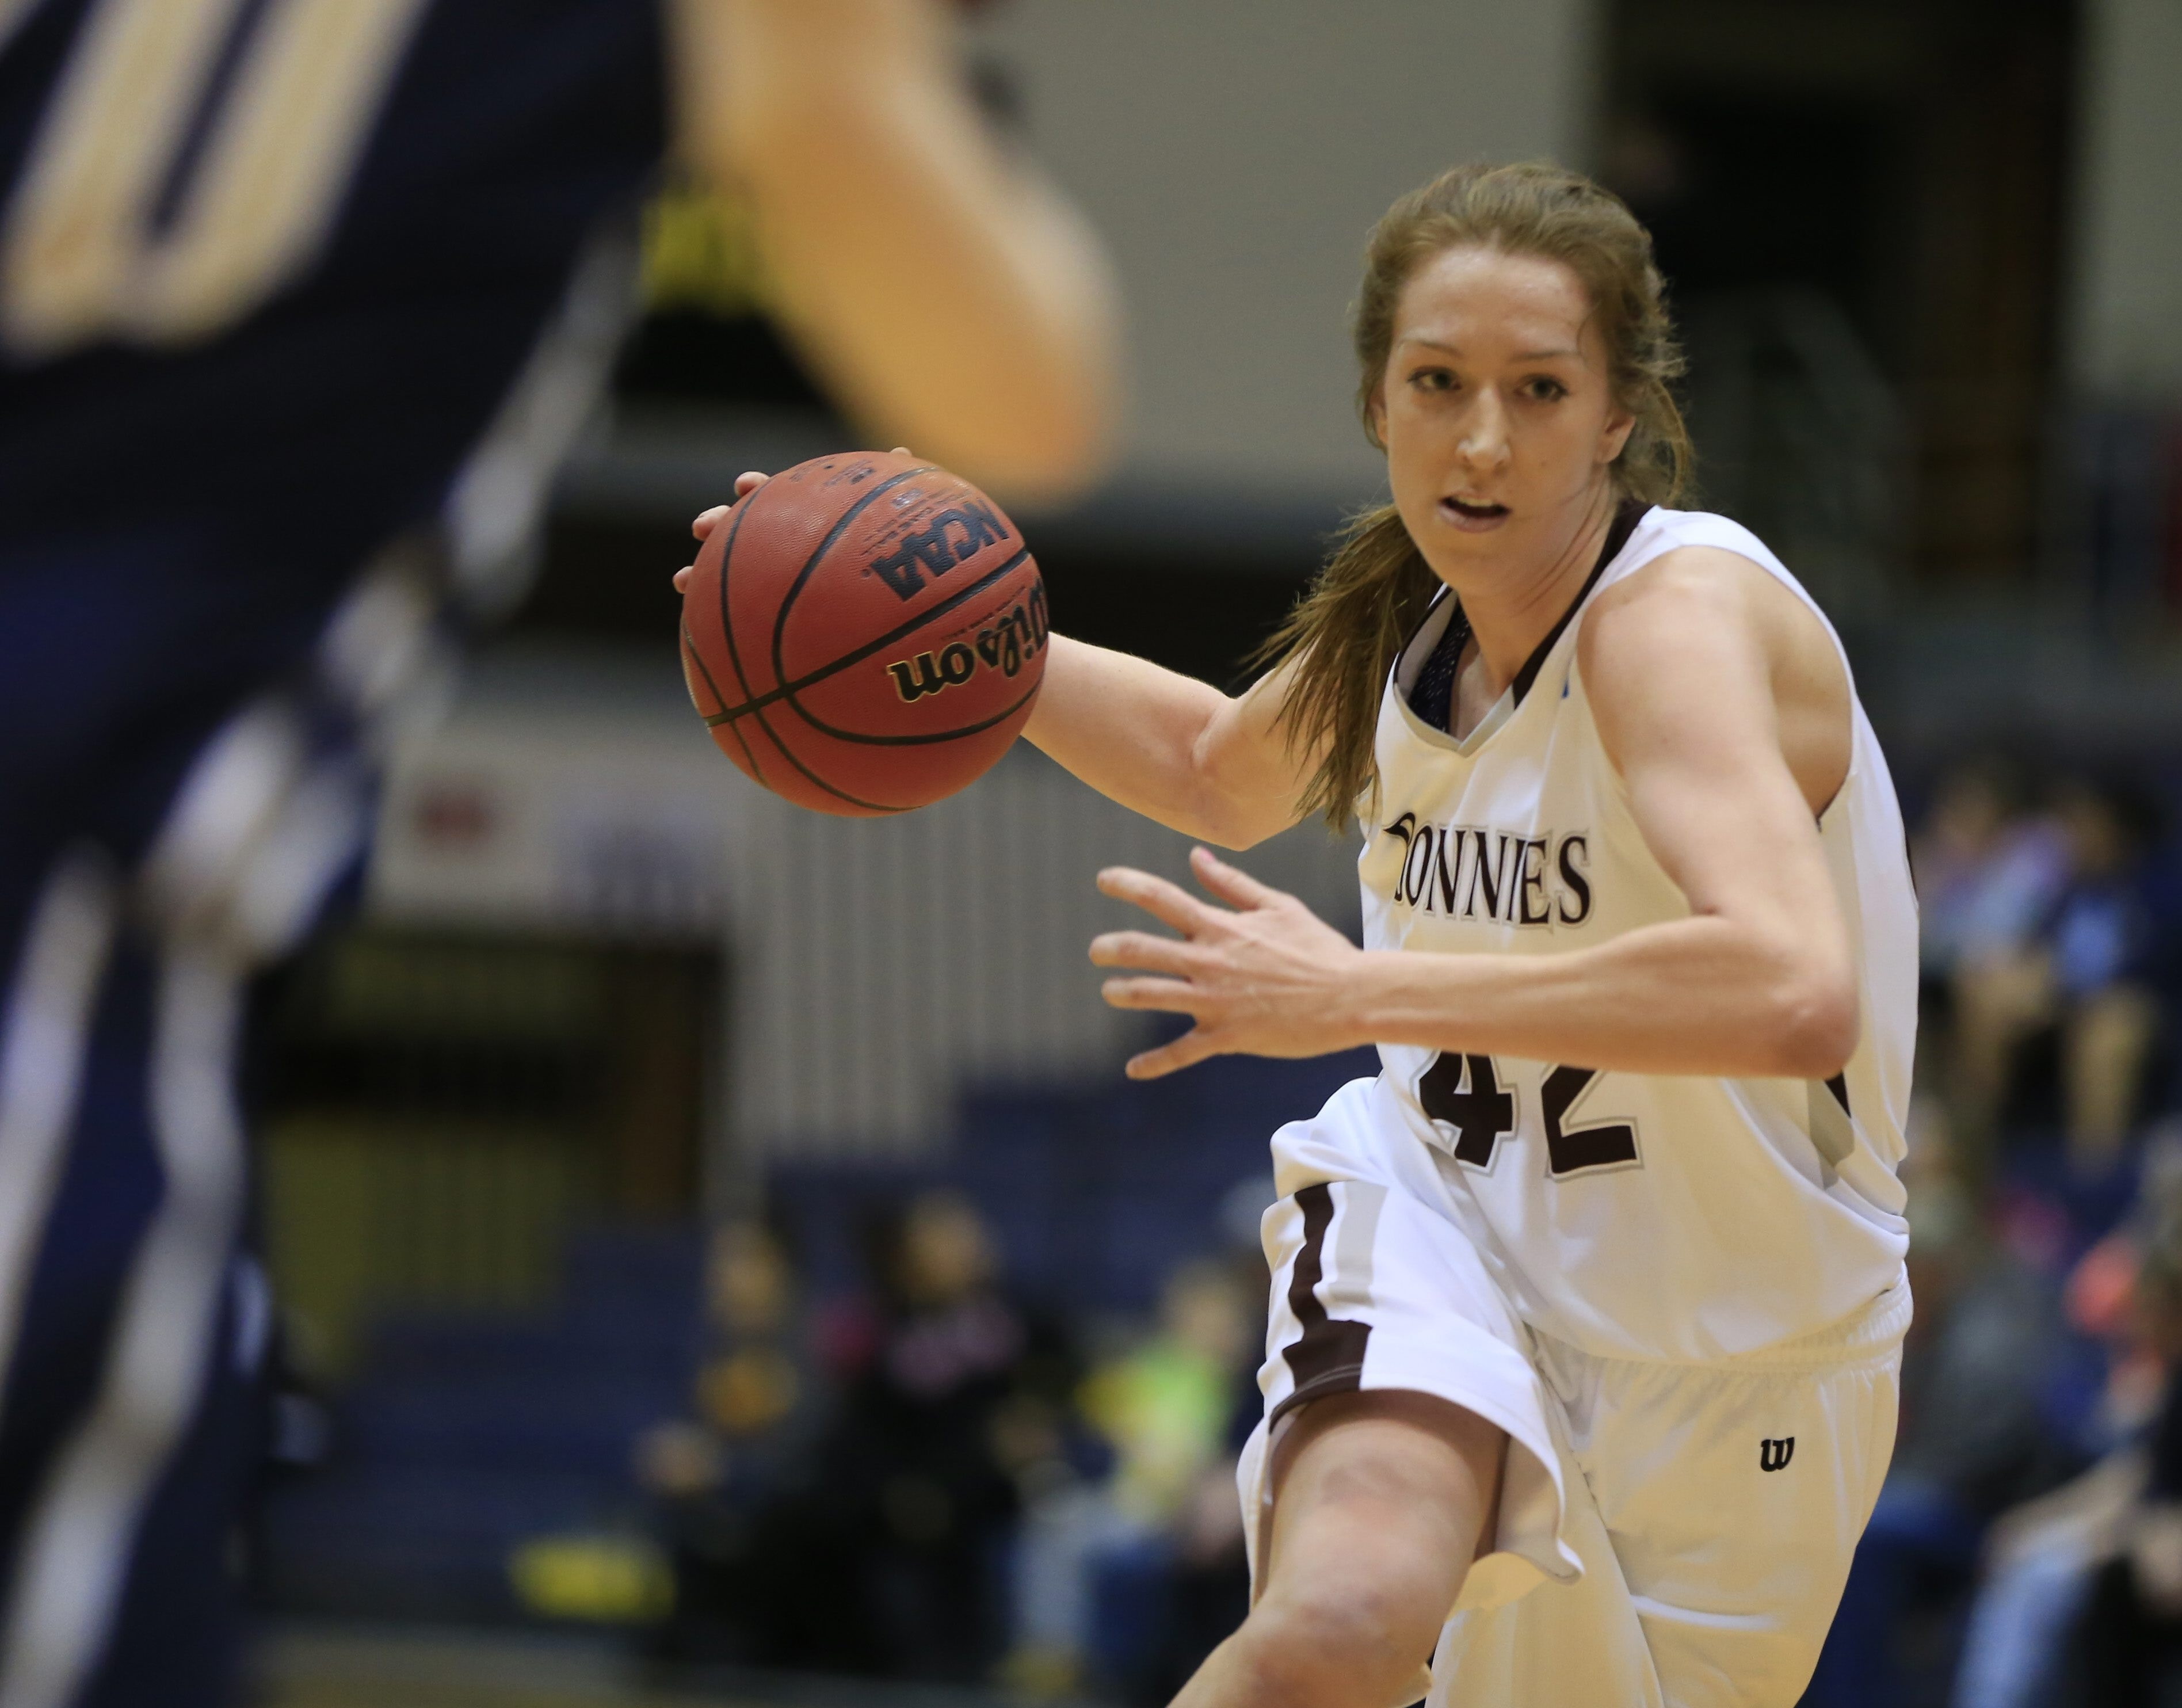 Katie Healy and her St. Bonaventure teammates have the NCAA Tournament in their sights.